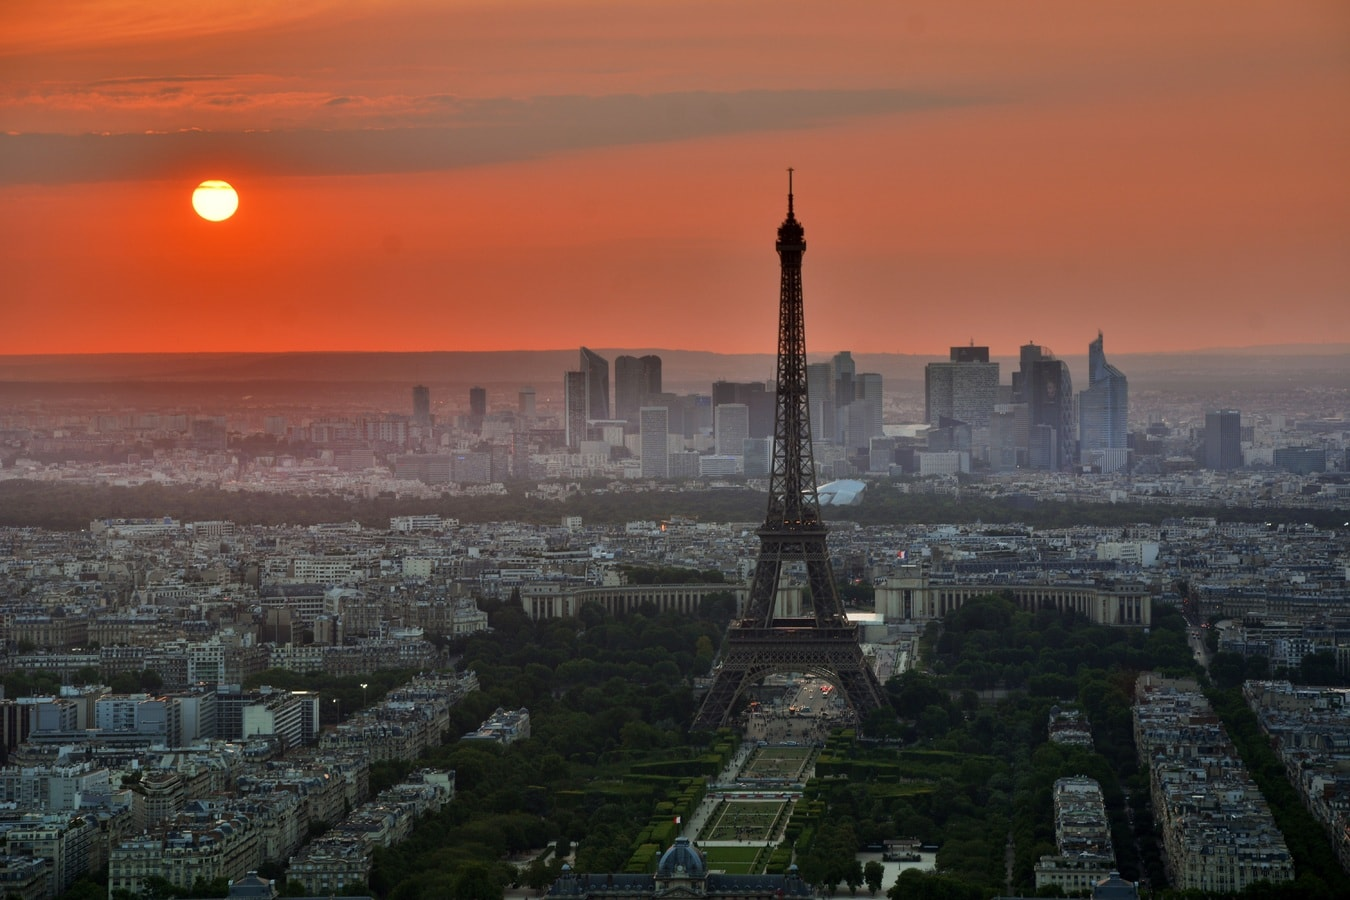 whats is the best places to admire a romantic sunset, yes you van shose the best places by reading this topic